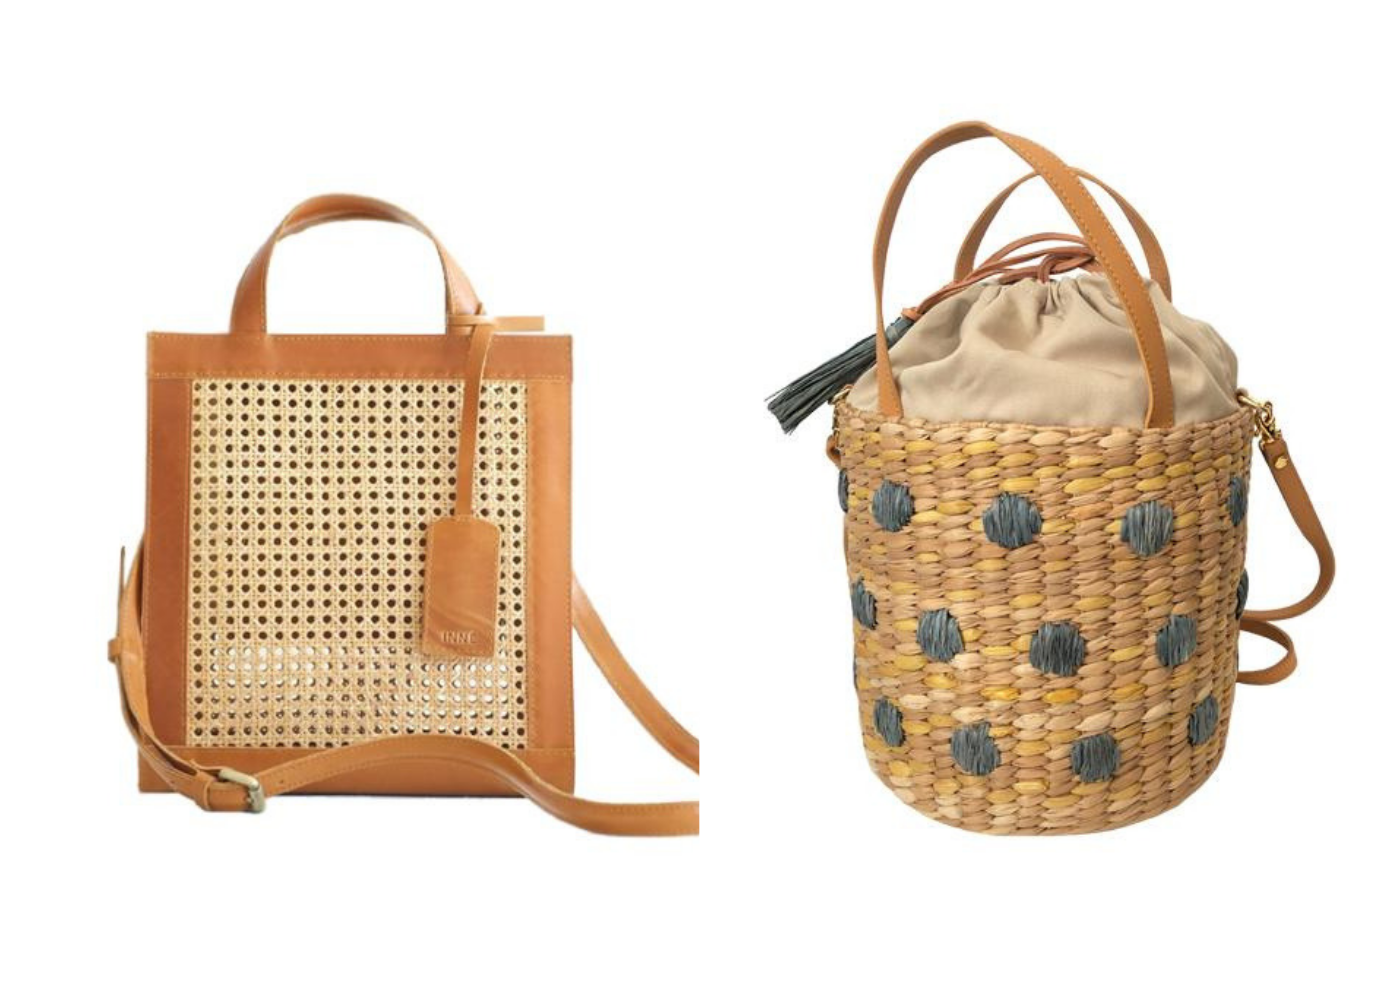 Basket bags that bring on eternal summer style: here's where to shop them from Singapore